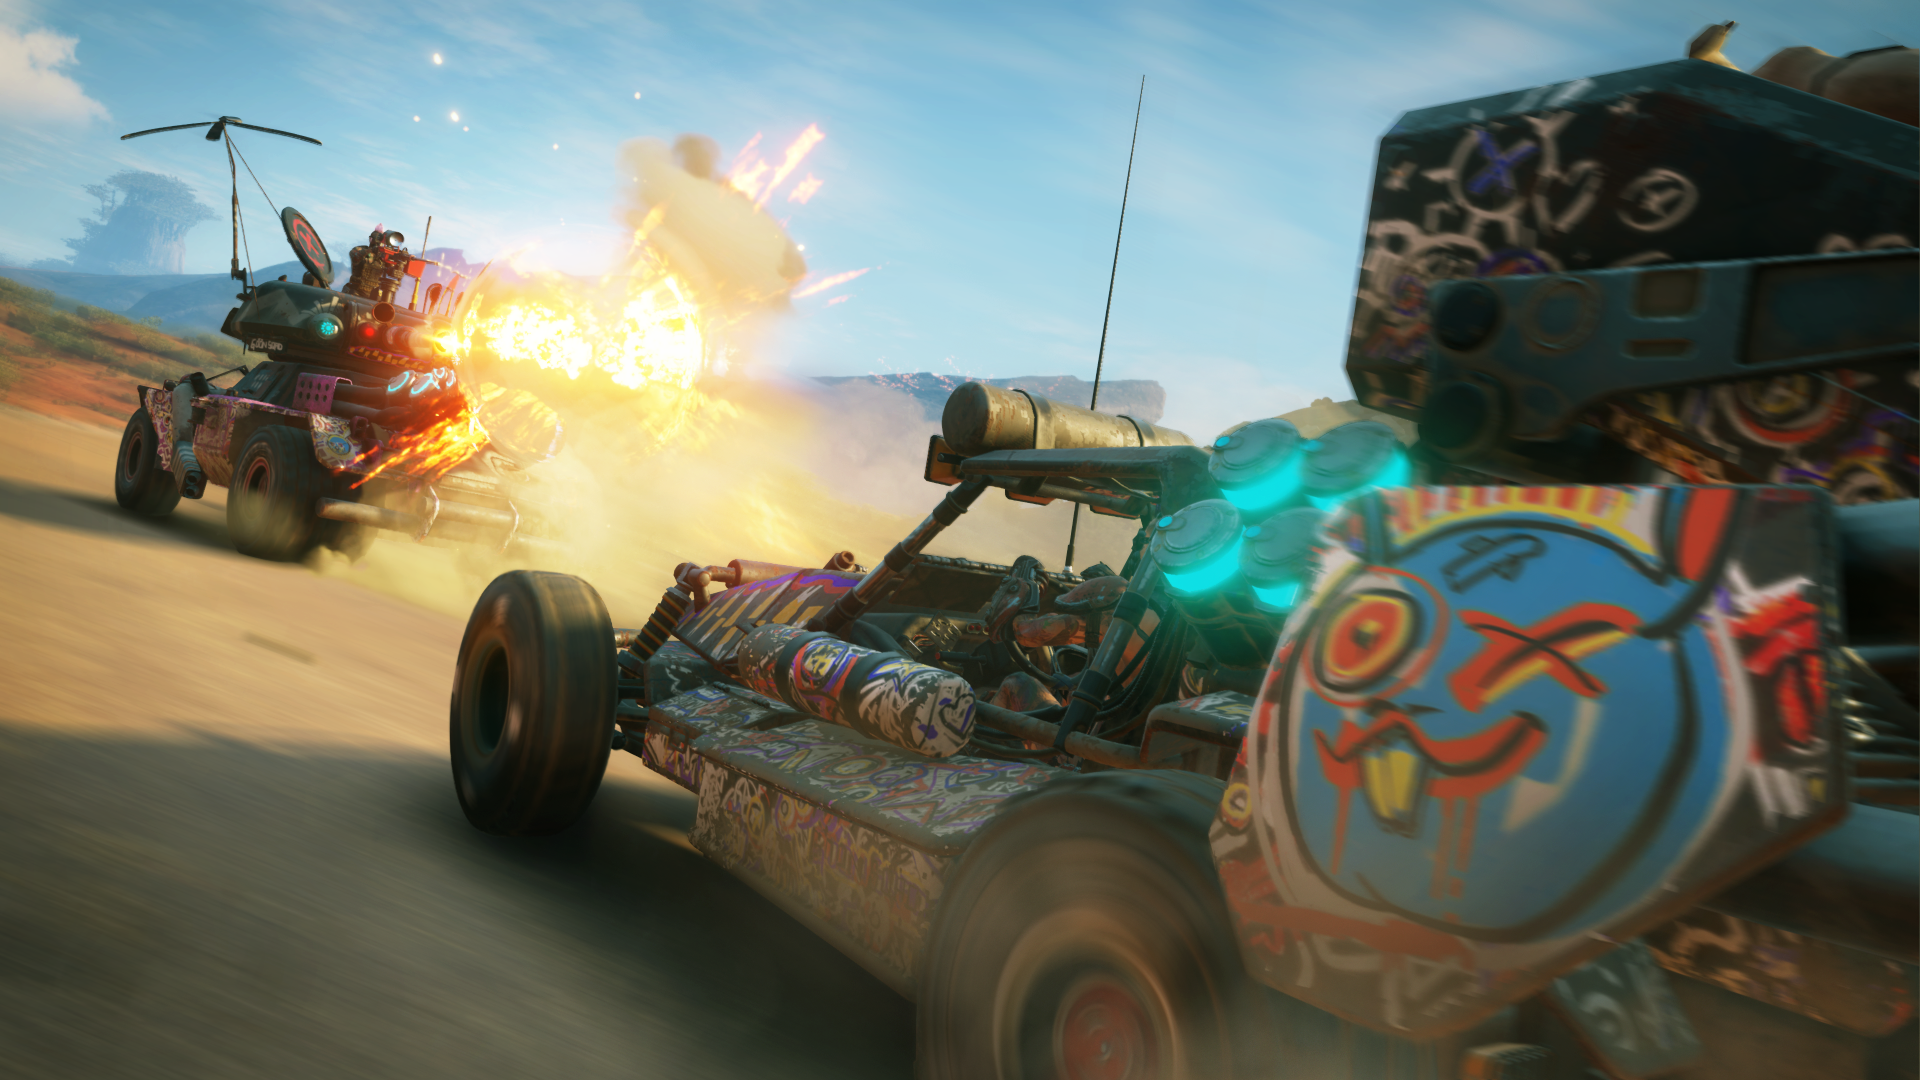 RAGE 2 coming in 2019